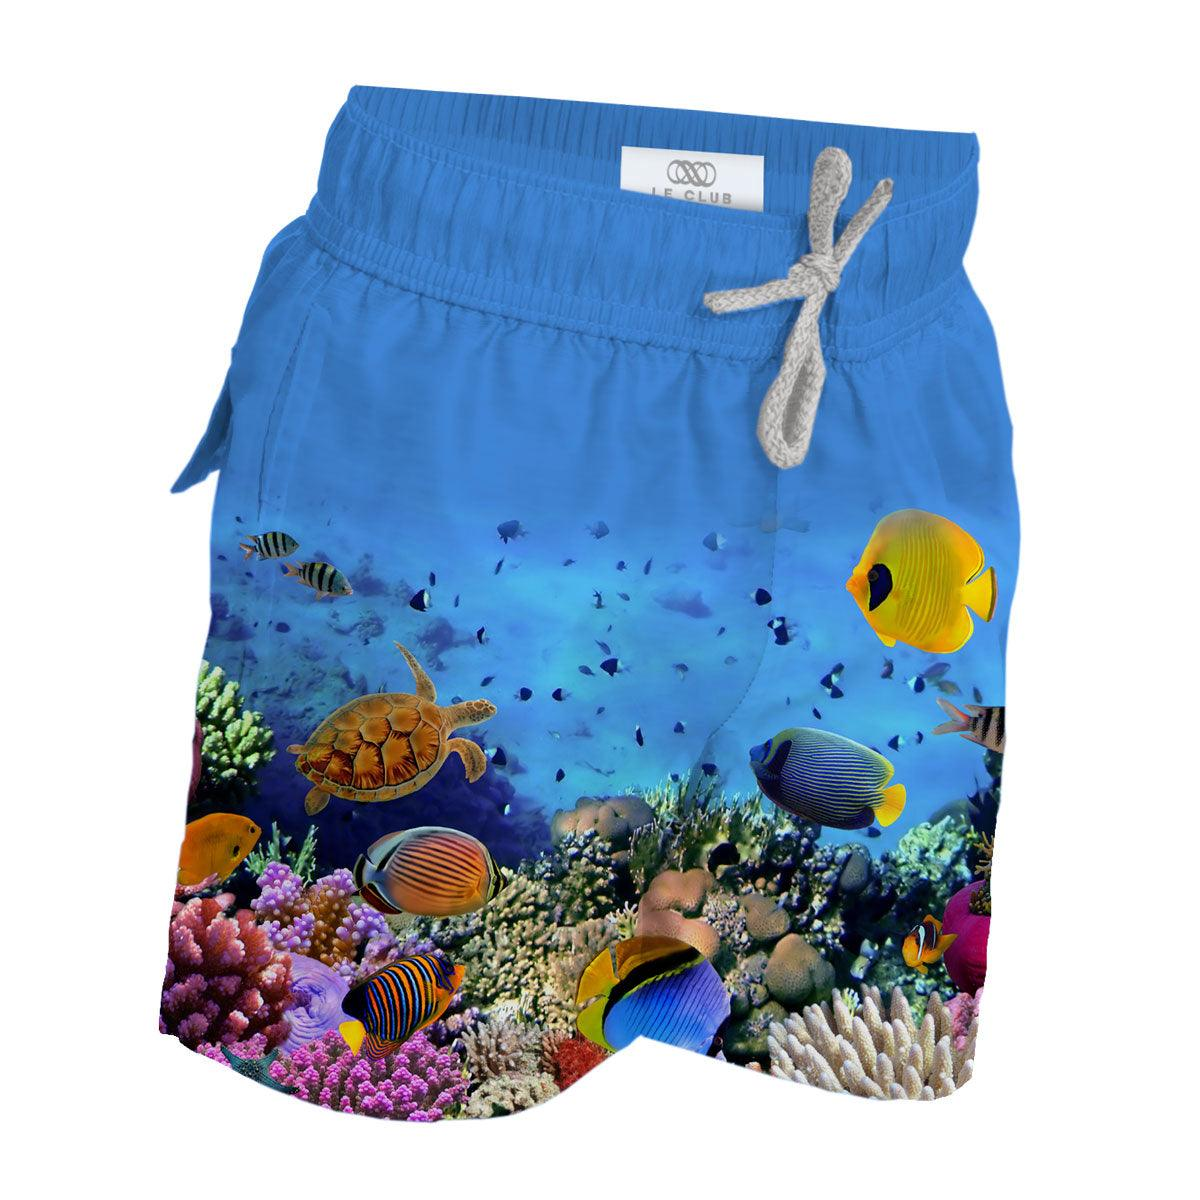 Boy's Swim Trunks Aquarium